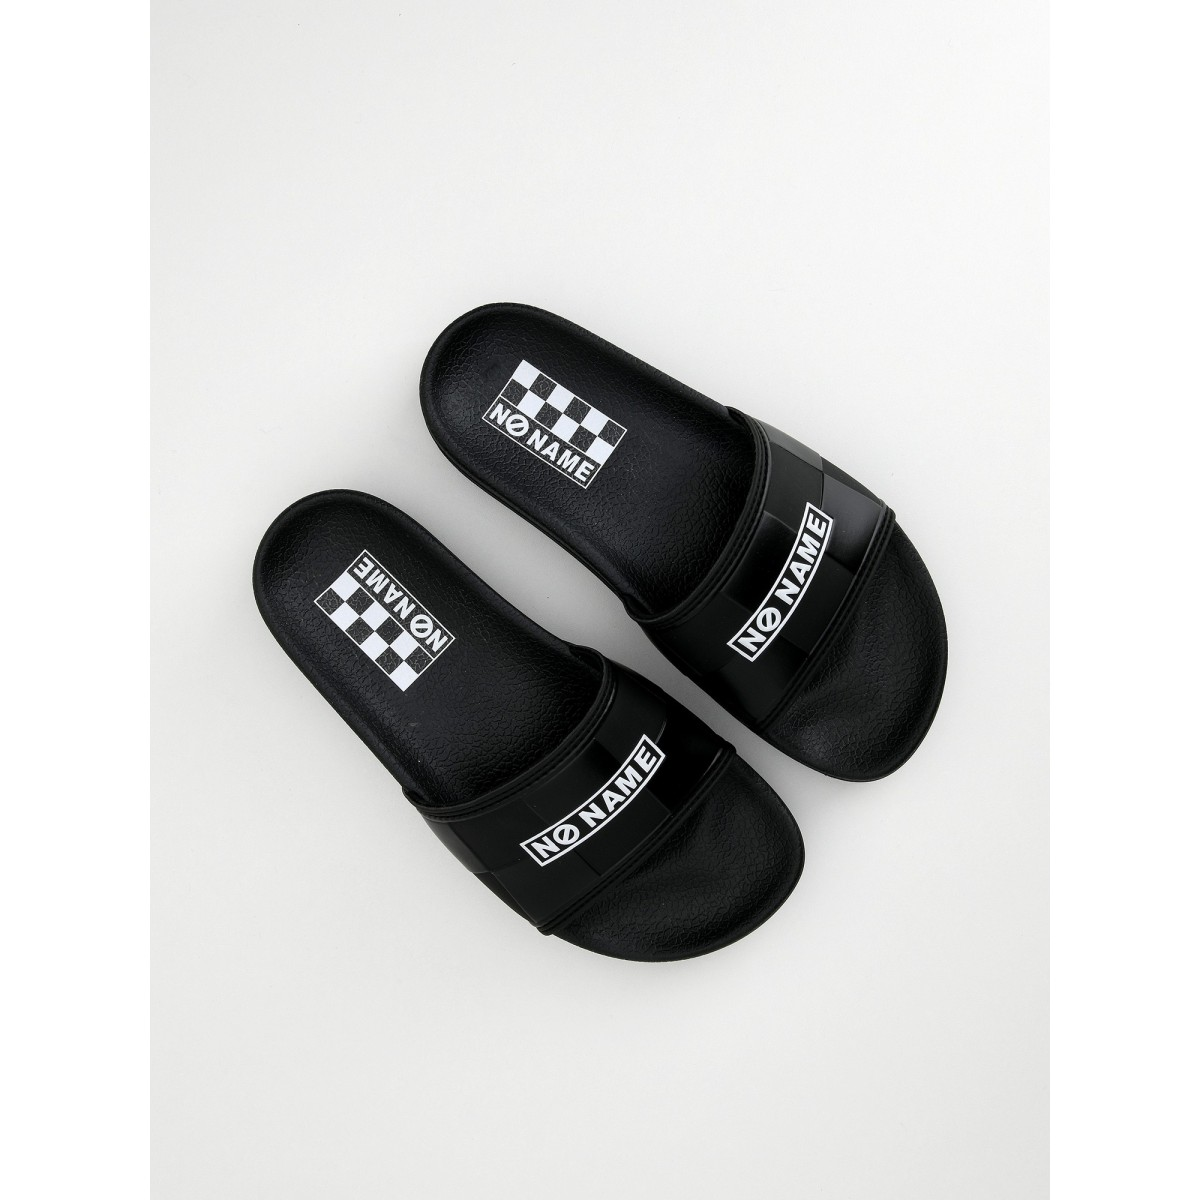 No Name Jungle Slap - Rubber - Black/Black